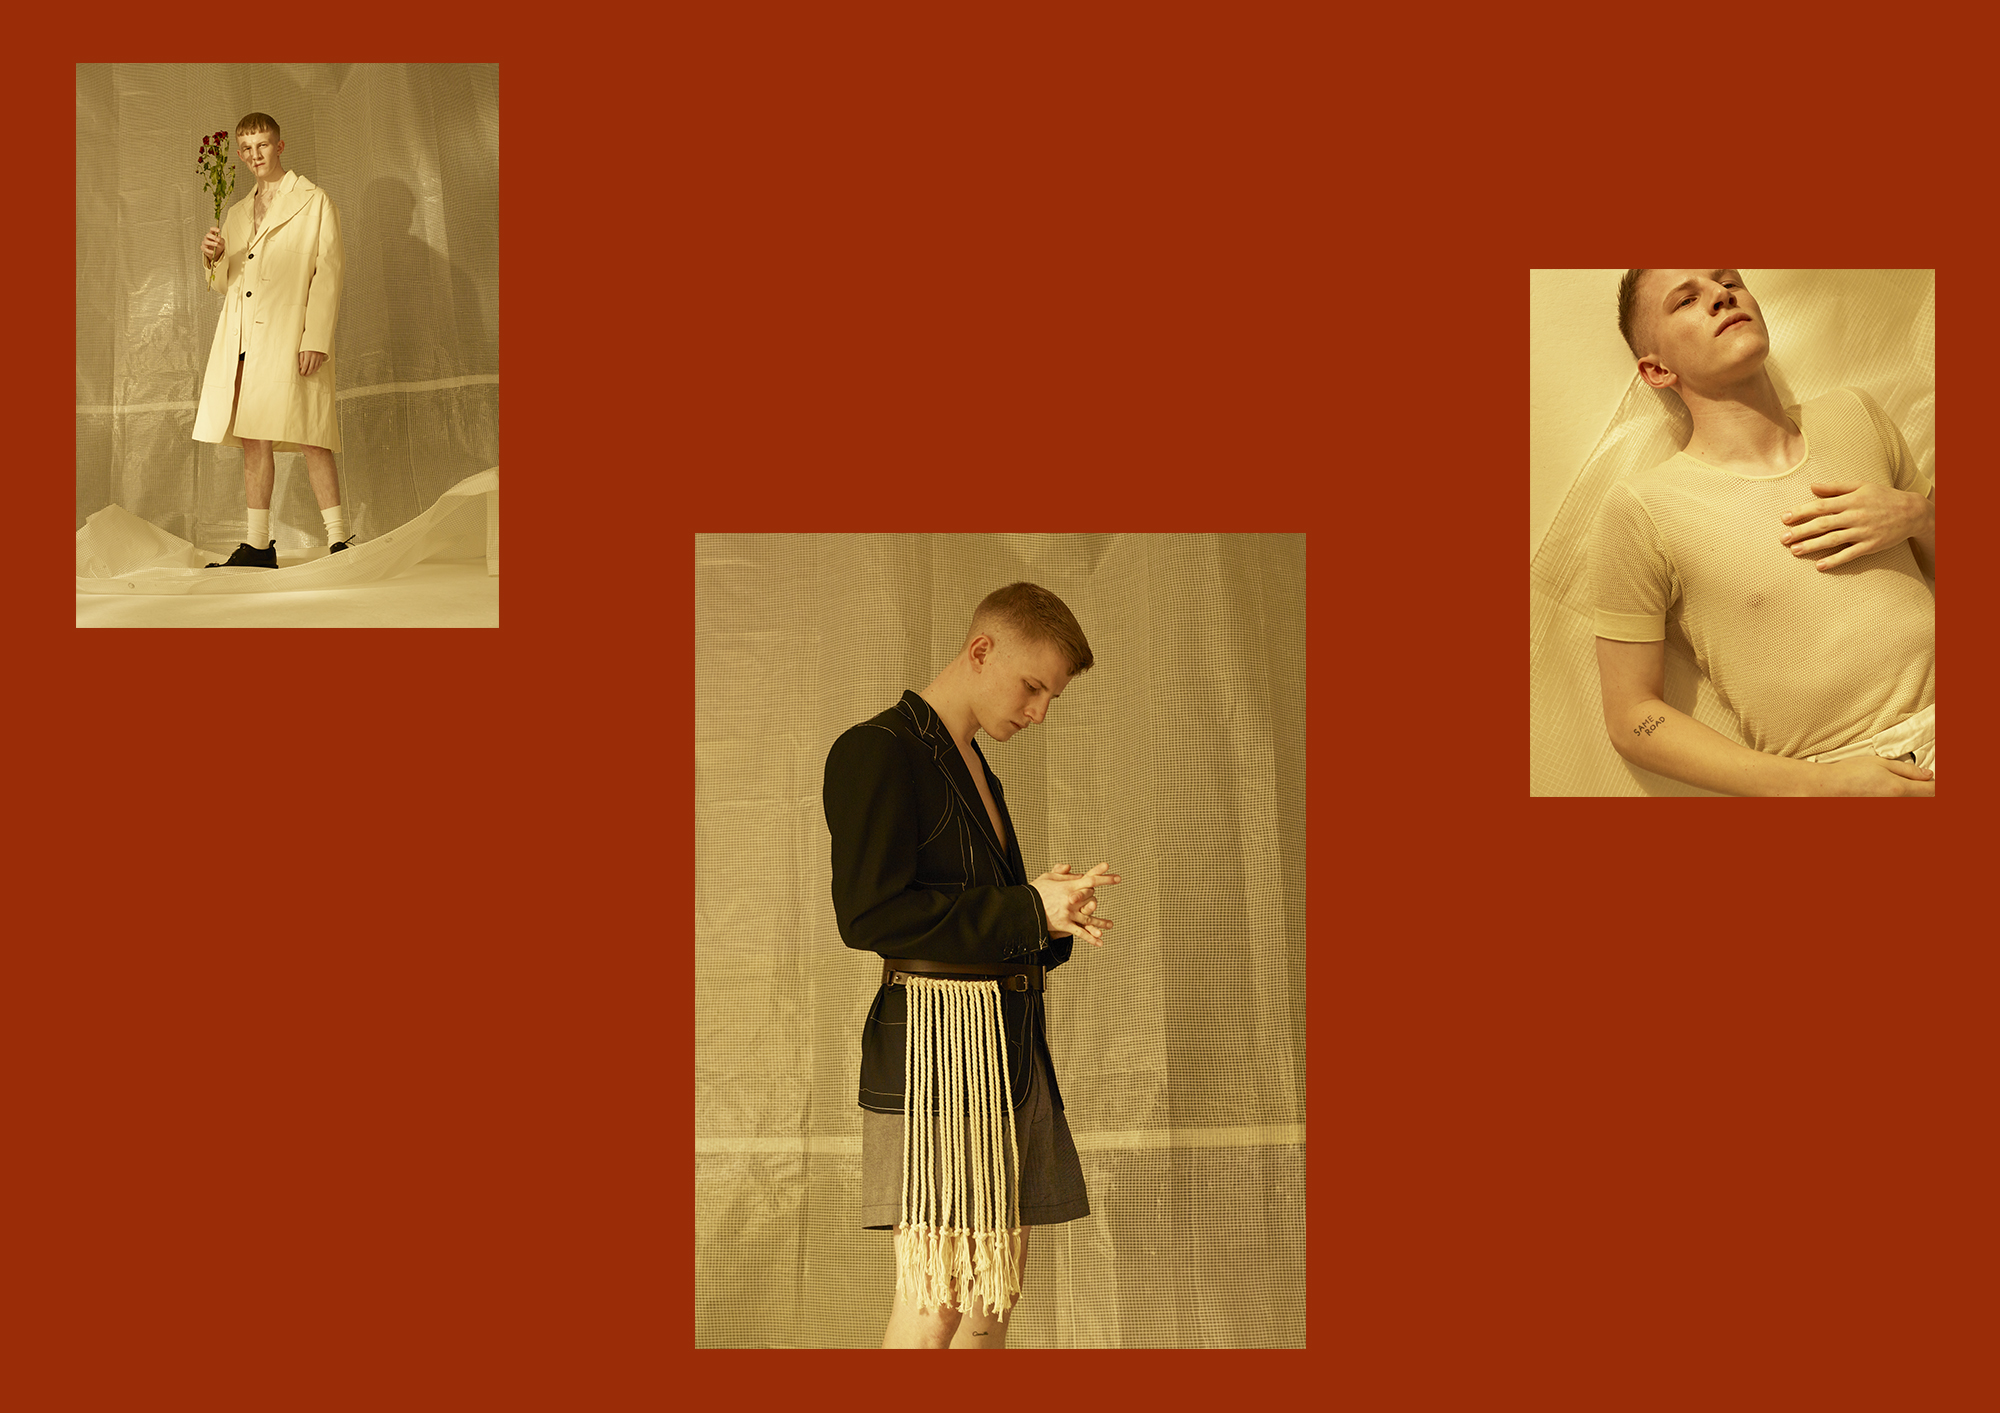 Left: Jacket and Coat by   Lou Dalton ,  Socks by   Falke   and Shoes by   Dries Van Noten .Center:  Shorts by   E. Tautz   and Belt by   Dries Van Noten . Right:  Top by   Dries Van Noten .